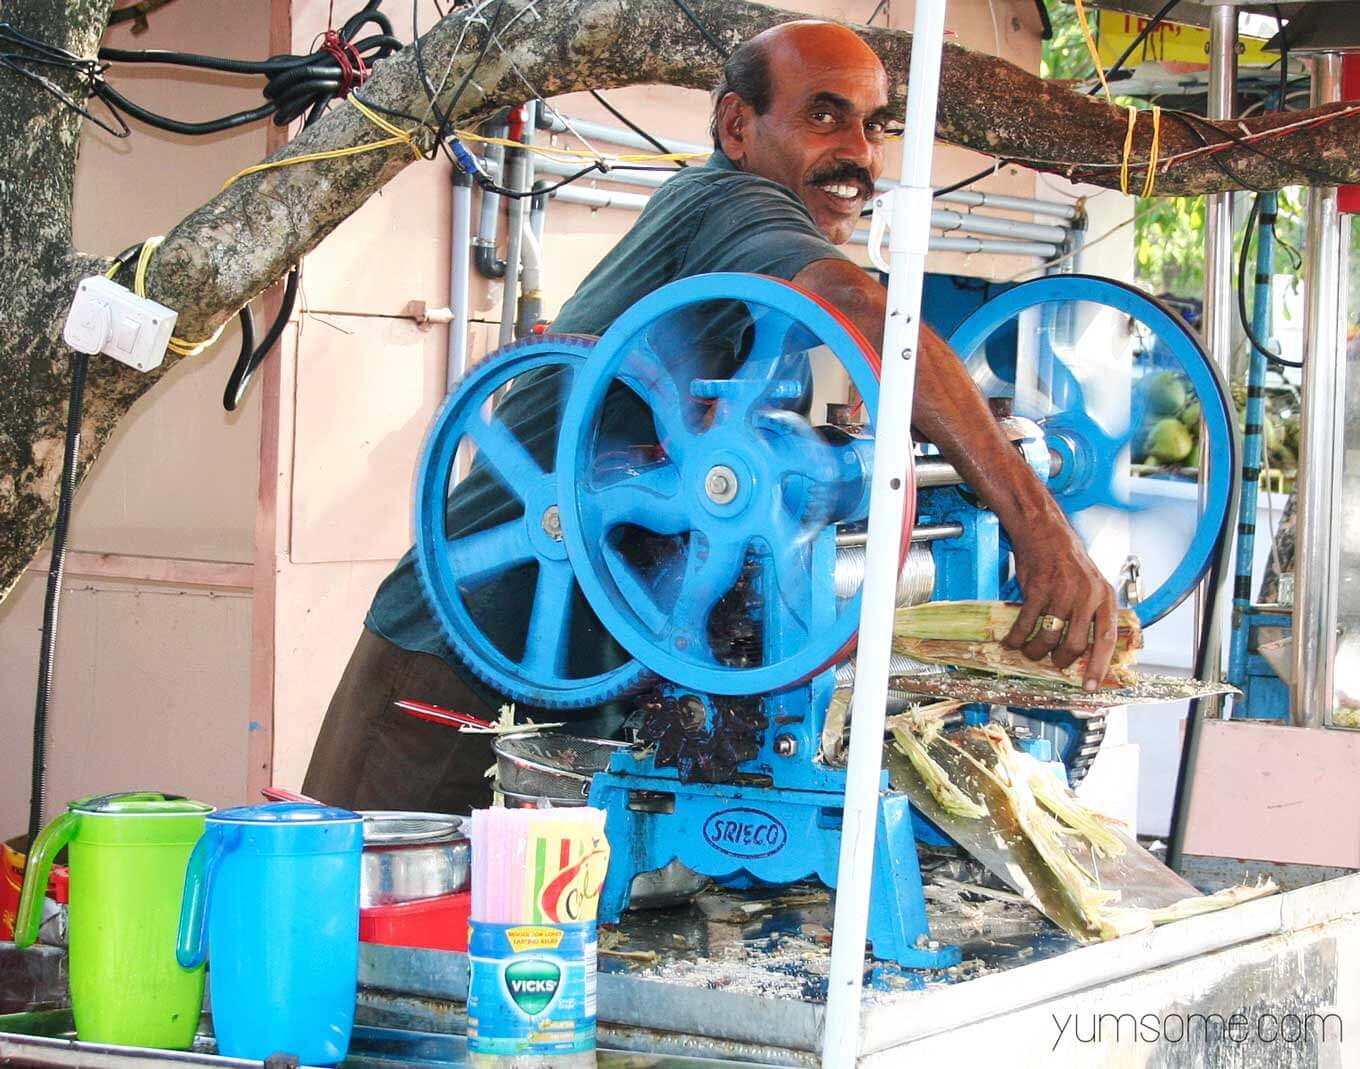 Sugarcane juice seller in Fort Kochi, India | yumsome.com